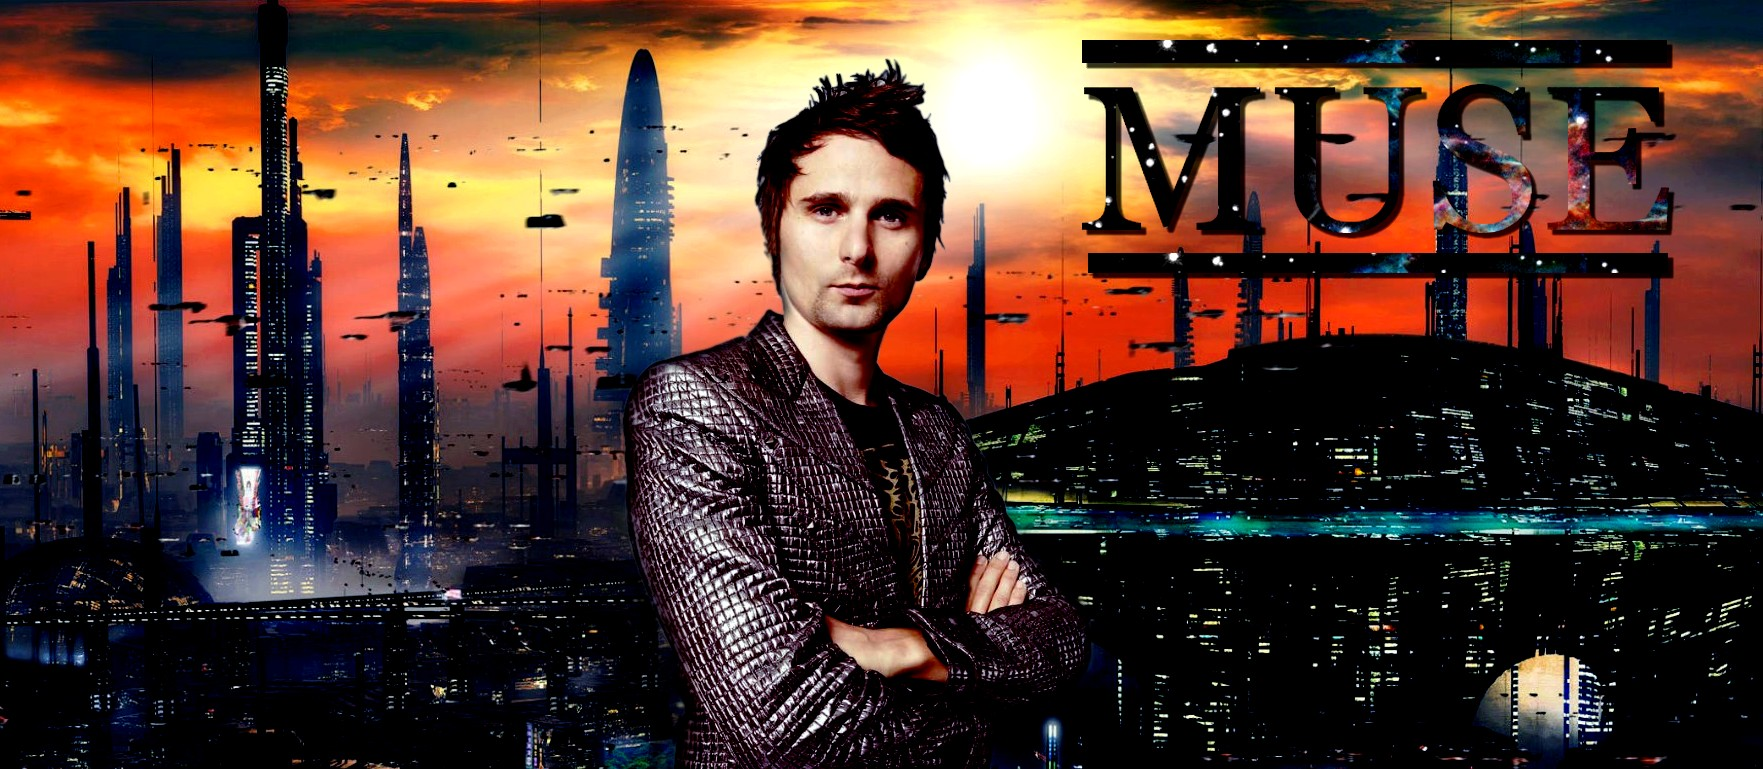 matt-bellamy-muse-34728629-1763-769.jpg